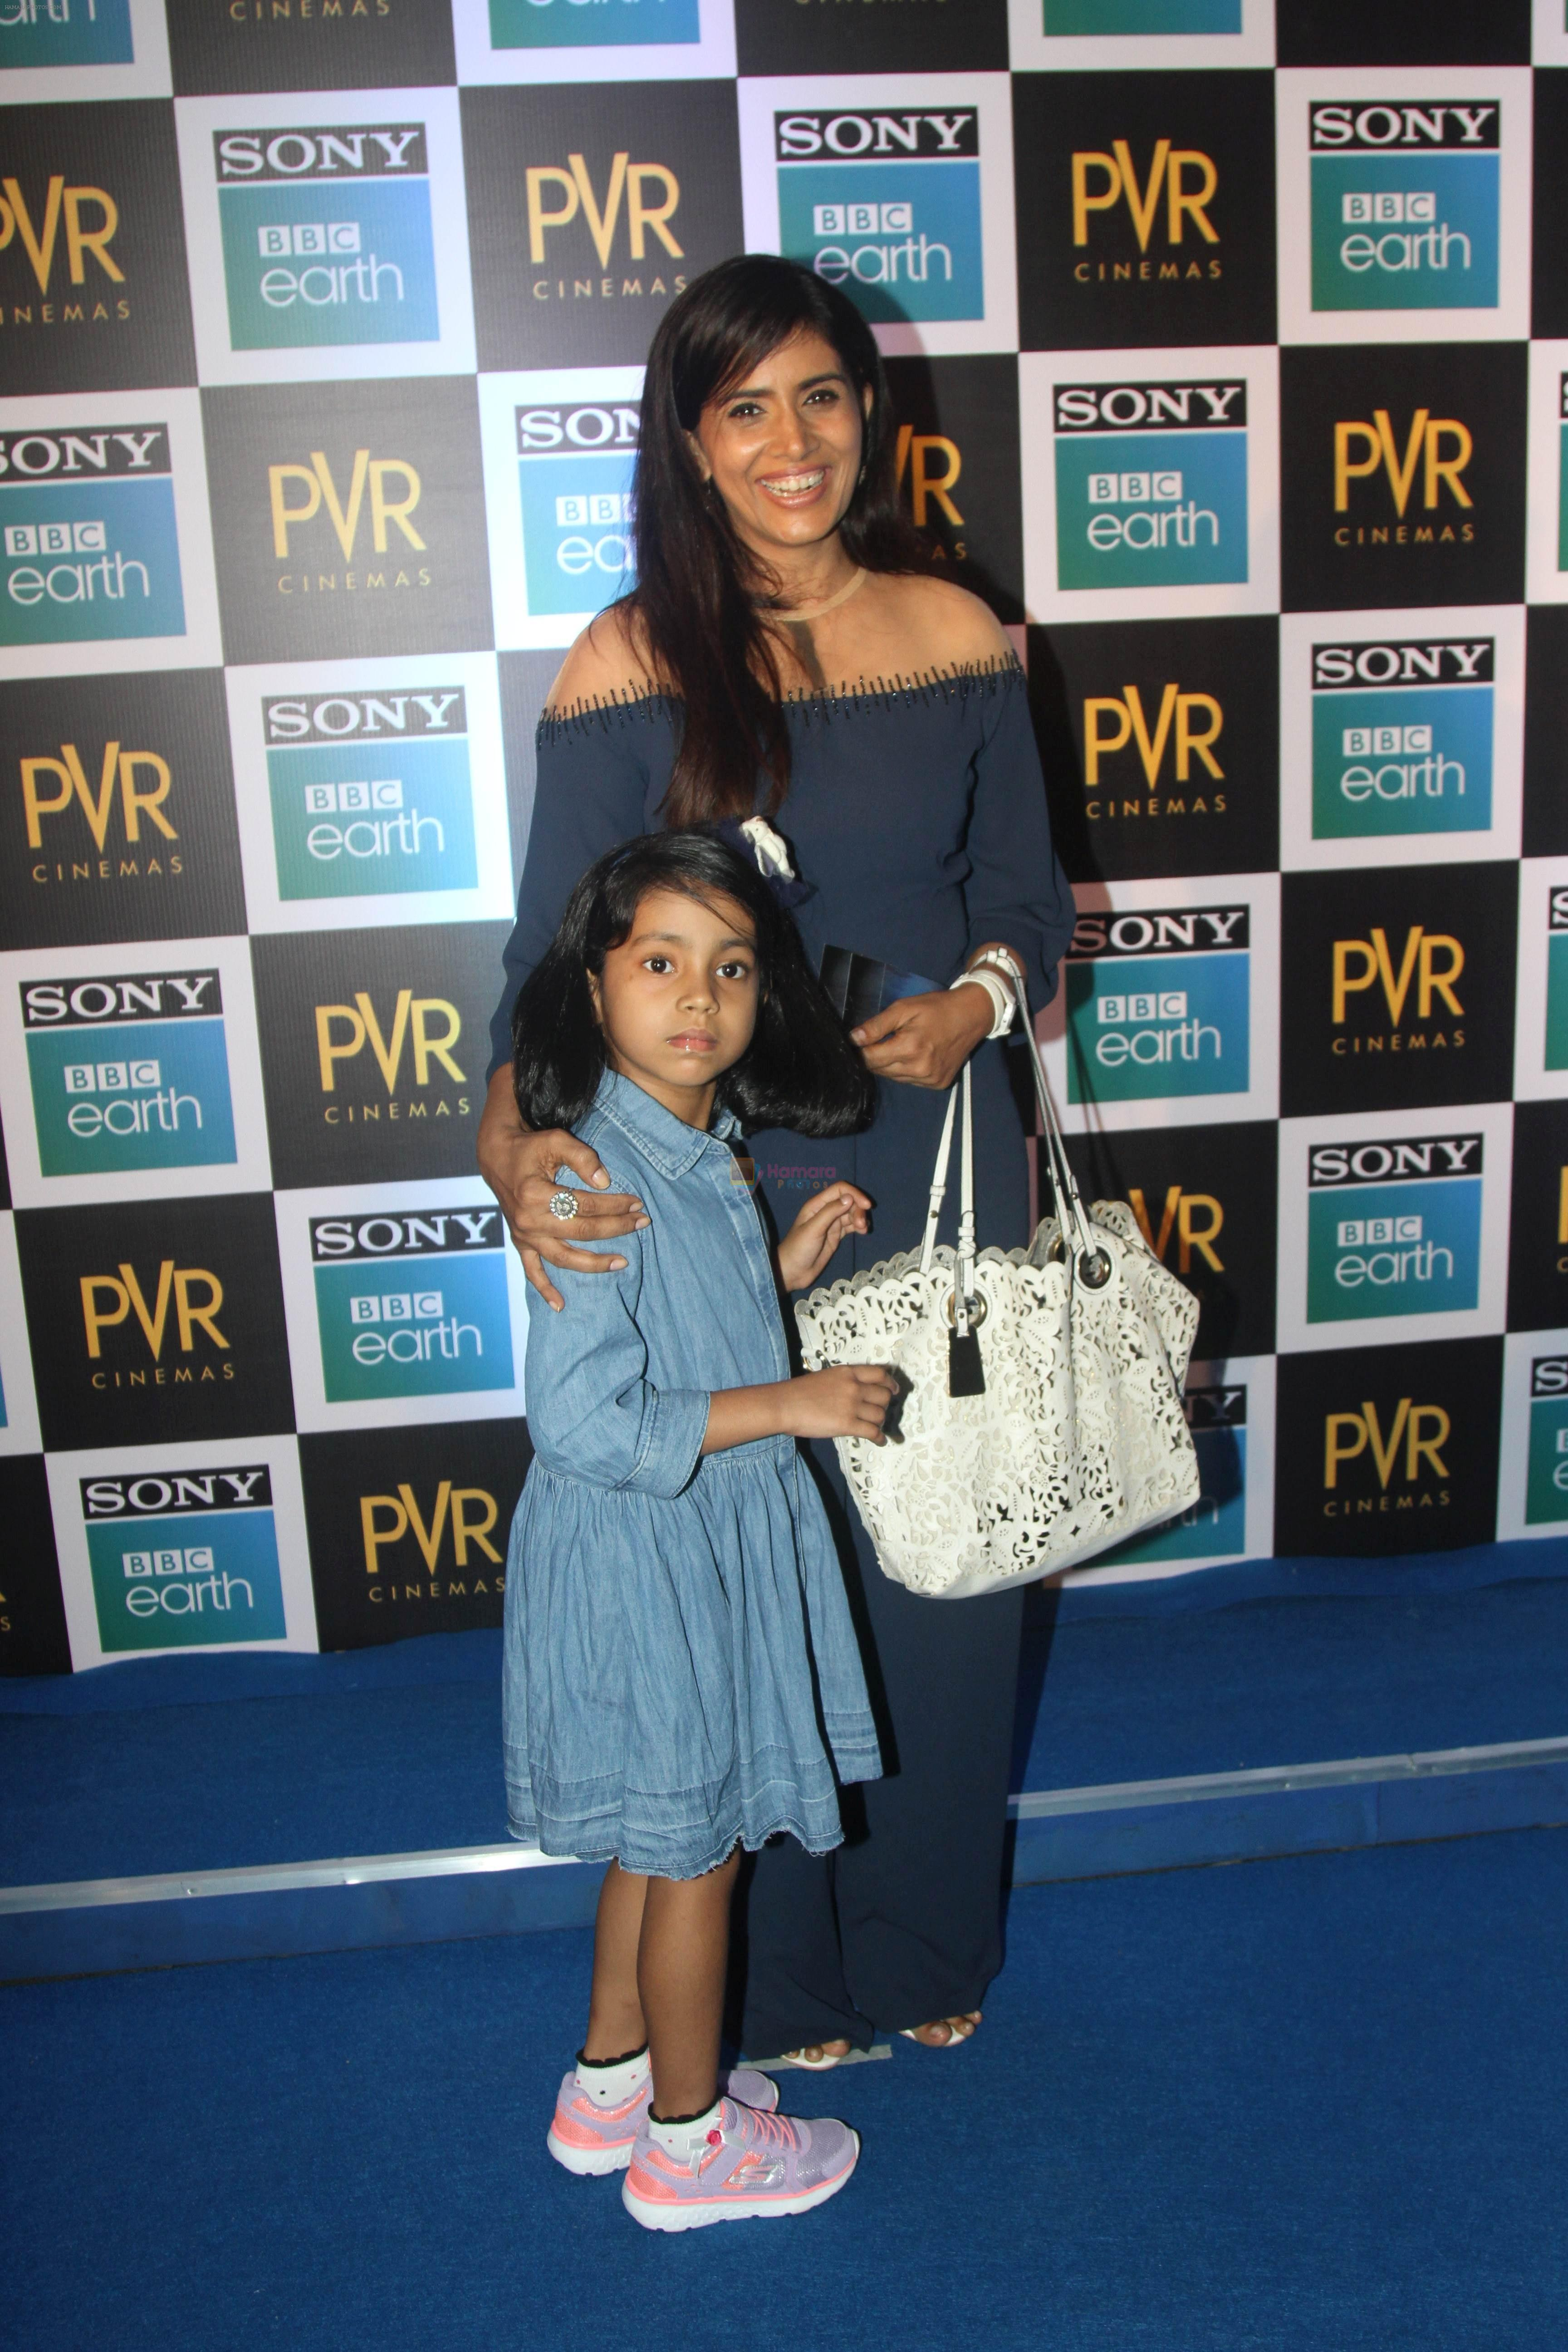 Sonali Kulkarni at the Screening of Sony BBC Earth's film Blue Planet 2 at pvr icon in andheri on 15th May 2018